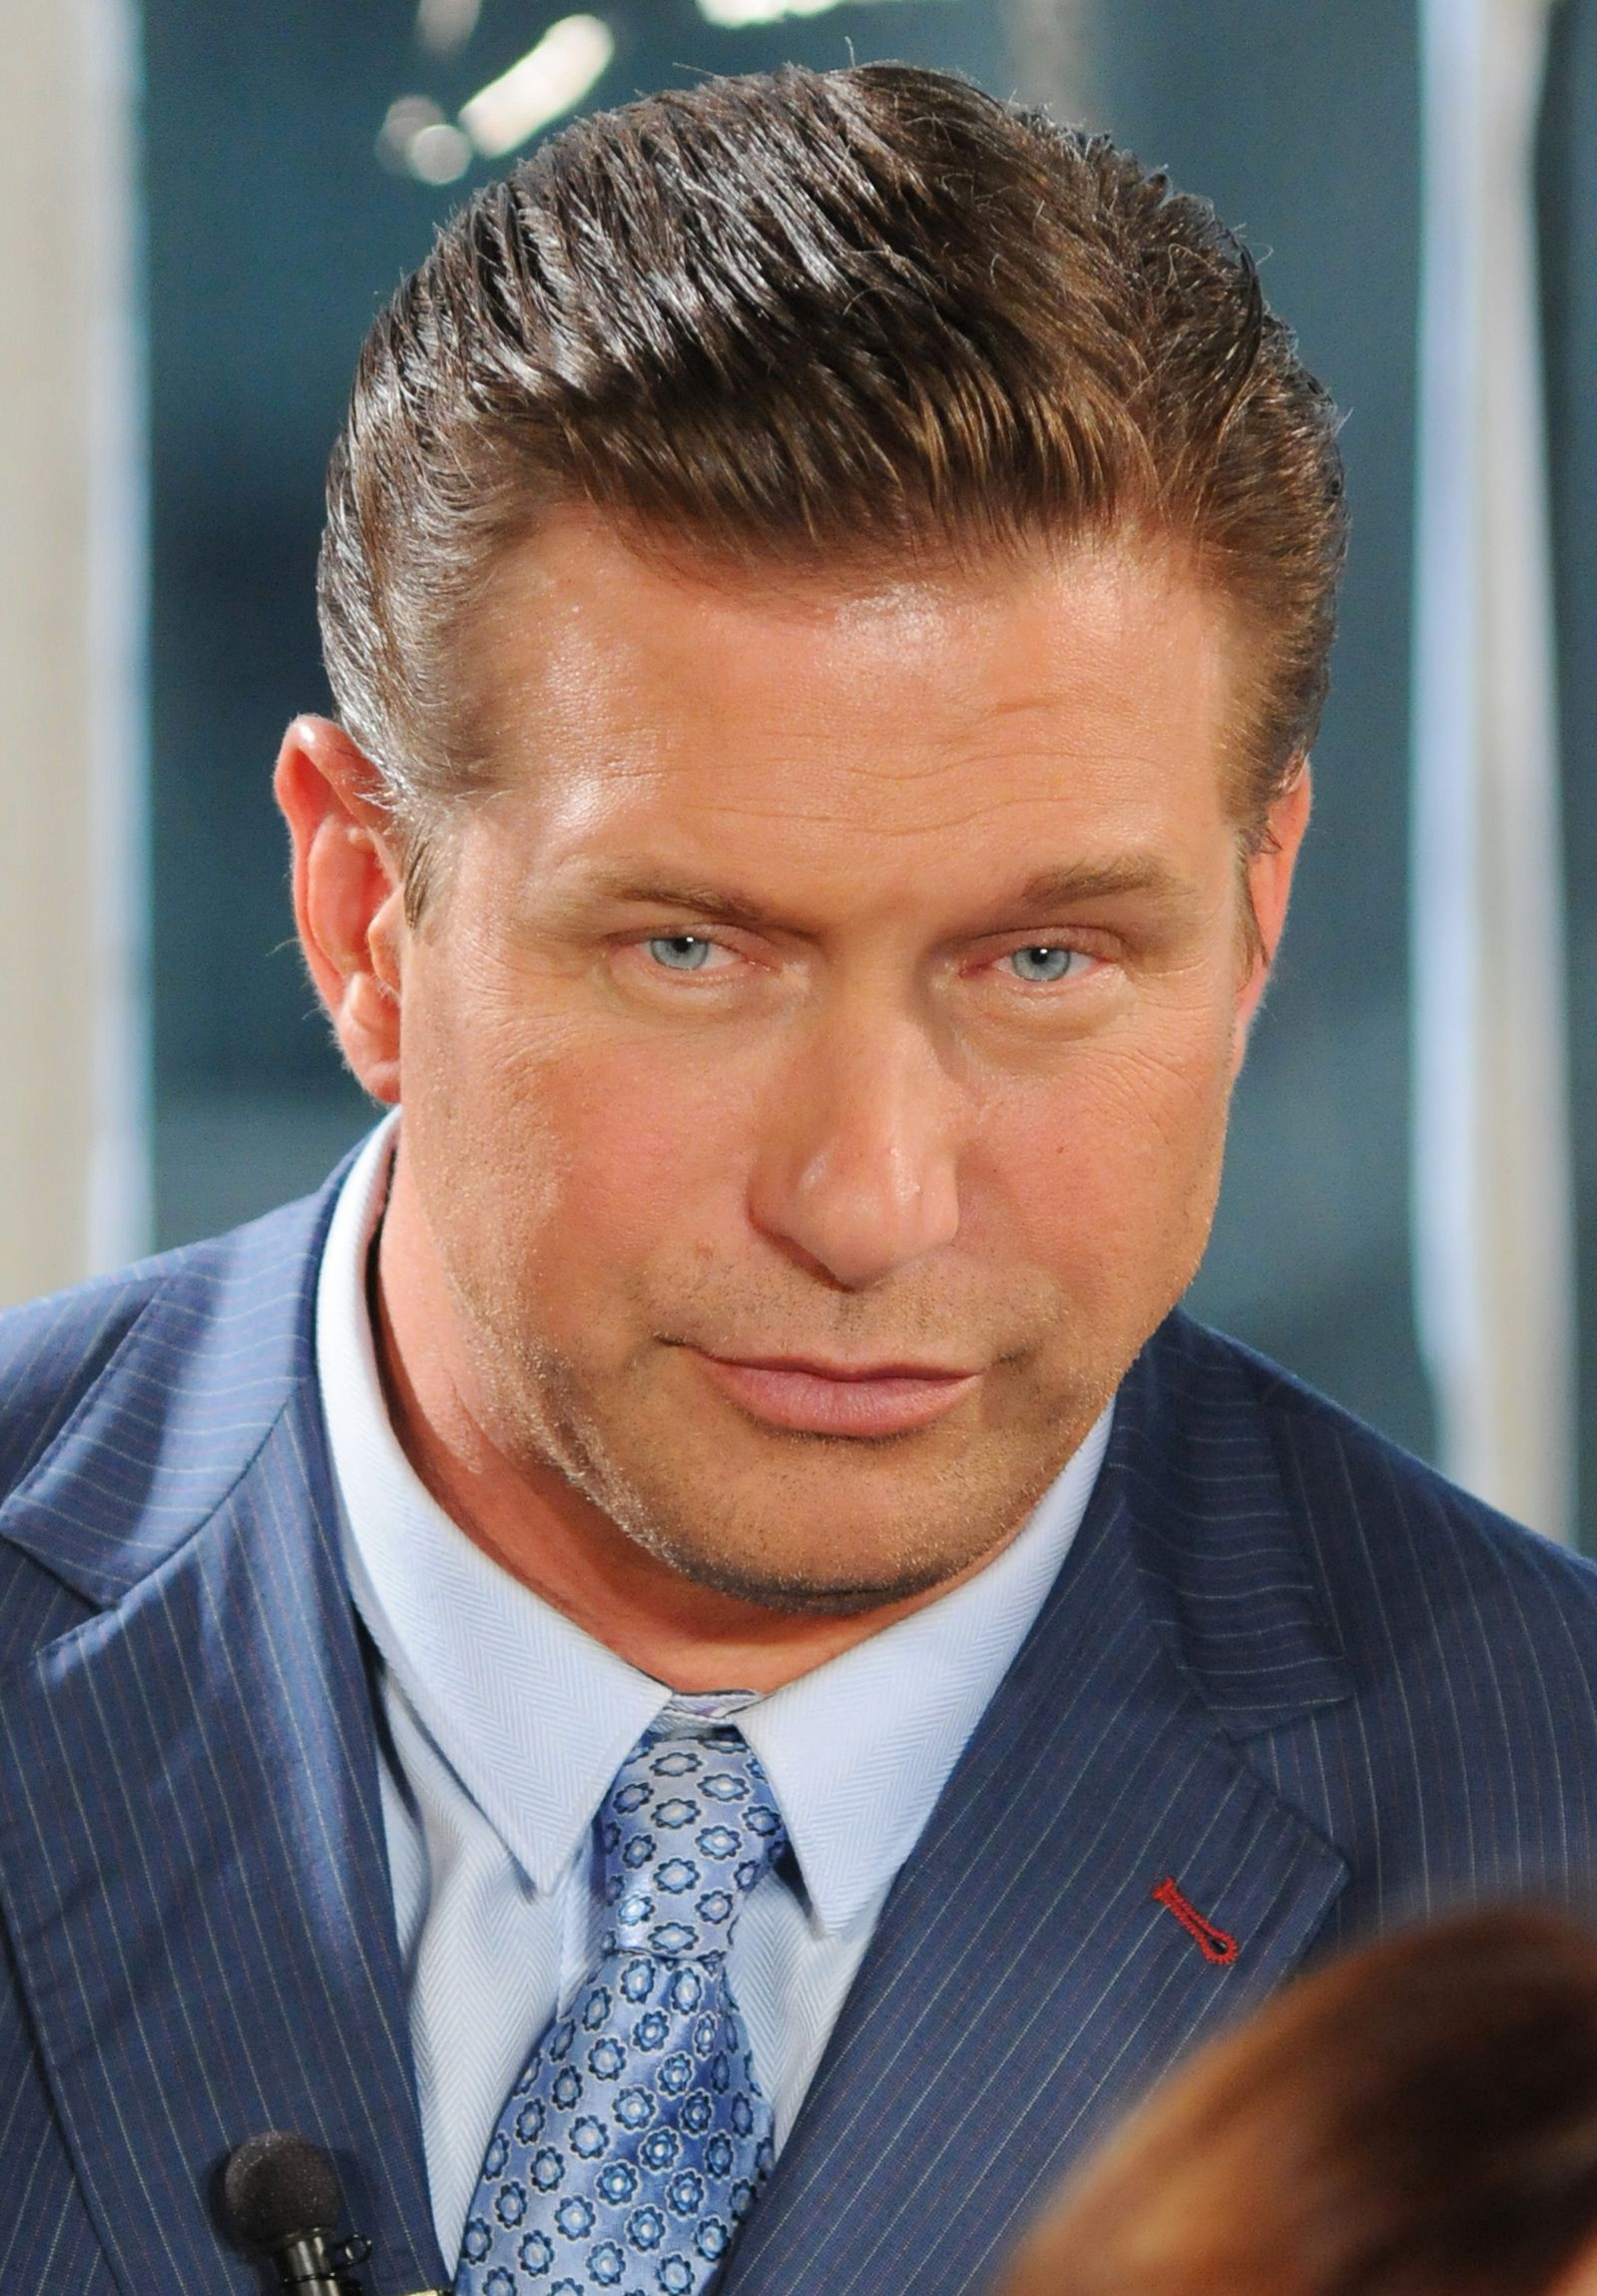 Actor Stephen Baldwin arrested for the second time in six months, this time for non-payment of taxes 07.12.2012 100